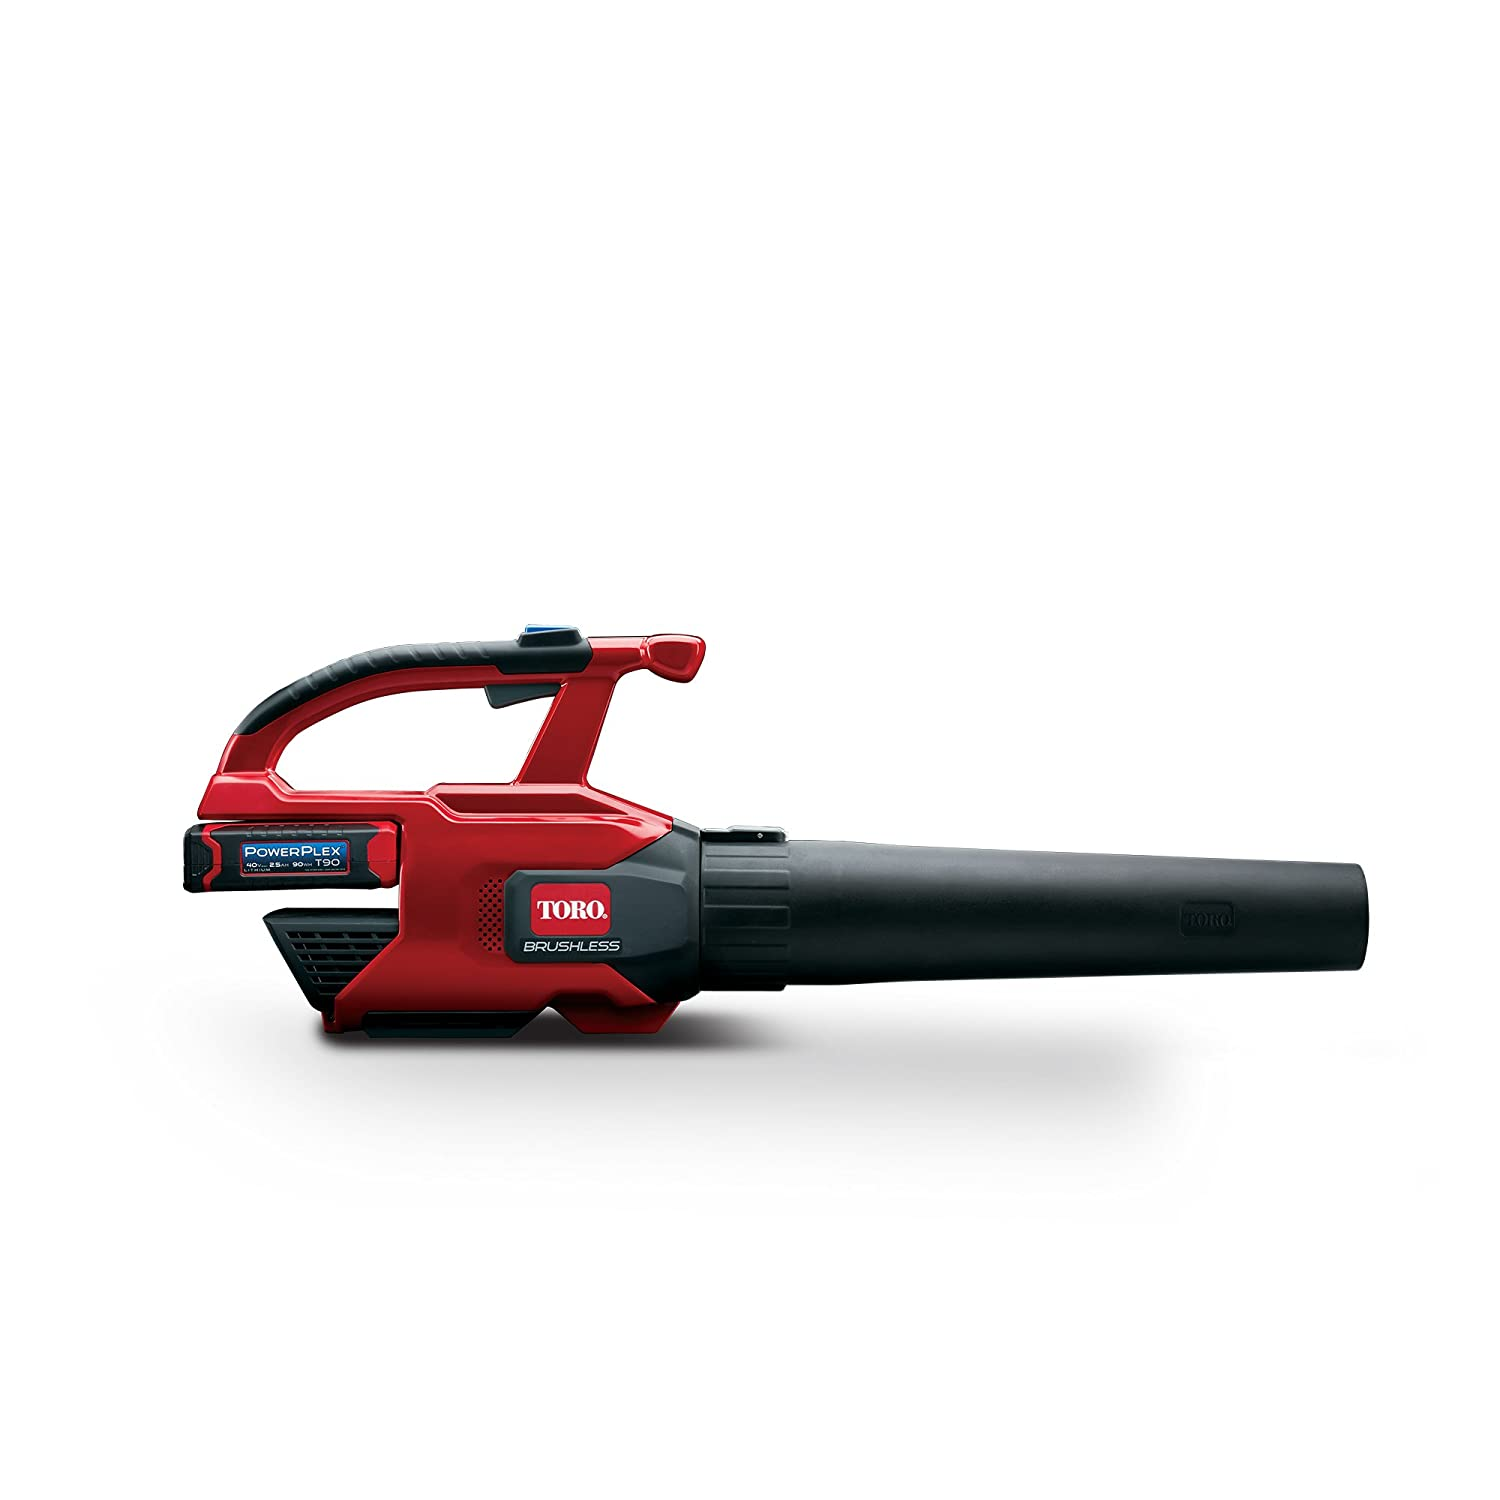 Toro Powerplex 51690 Brushless 40v Max 480 Cfm 150 Mph Power 400 Wiring Diagram Blower Cordless 25 Ah Battery Charger Included Garden Outdoor